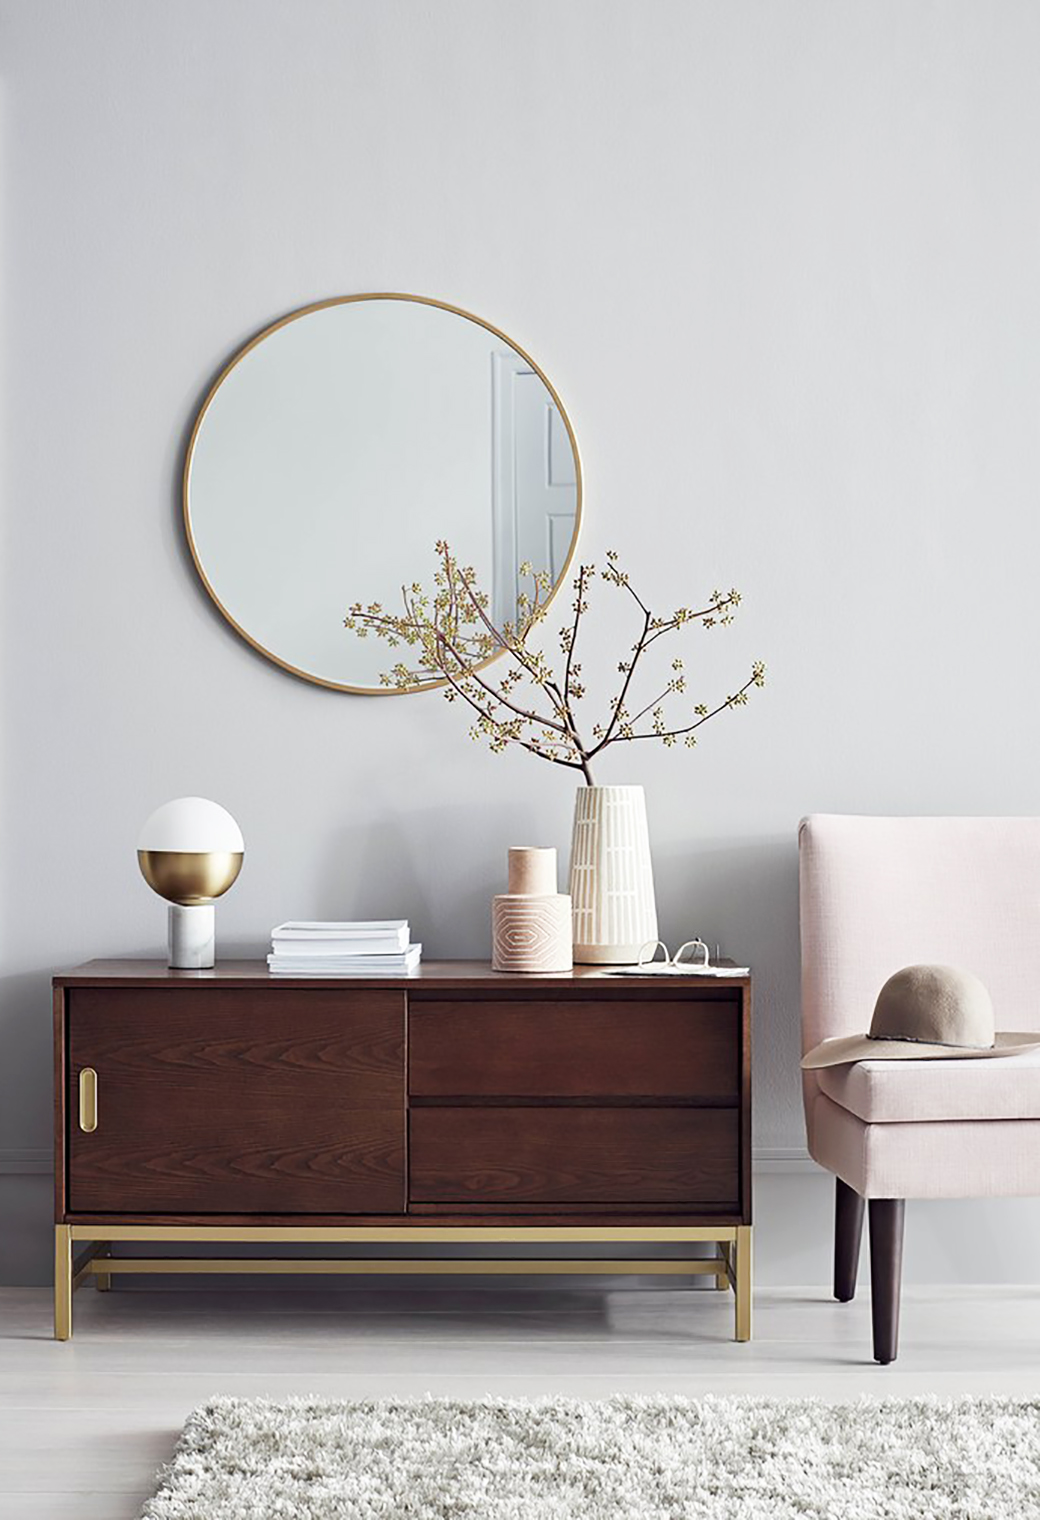 Project 62  Target s Newest Furniture   Accessories Collection     decor8 Sideboard with brass accent  ceramic vases  lamps  brass mirror and the  Plymouth chair